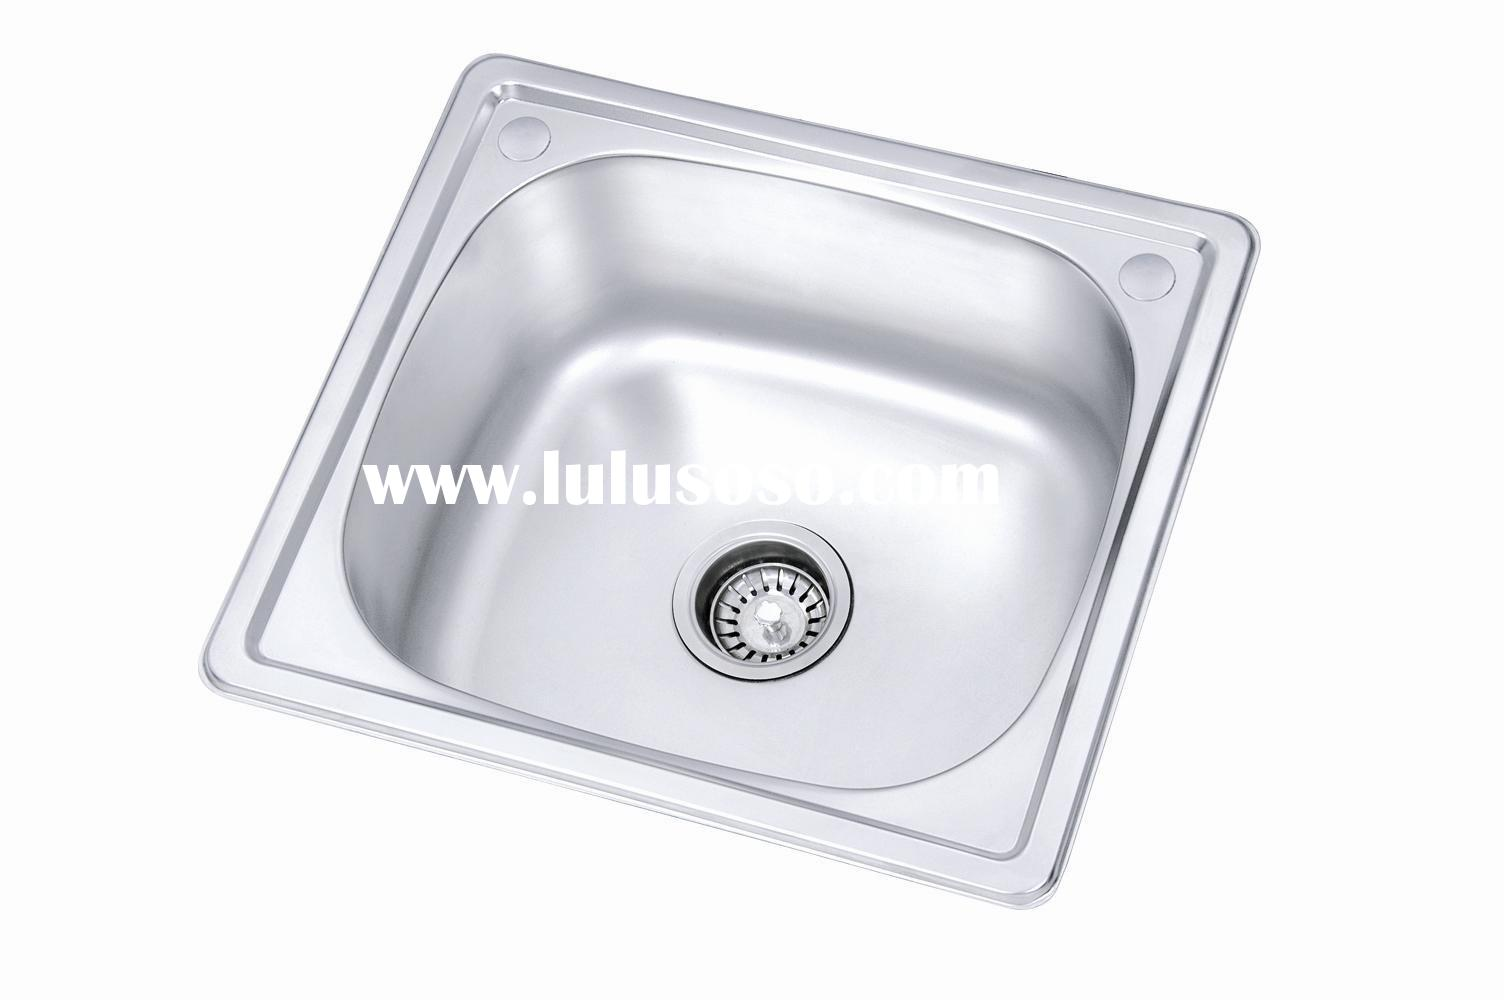 Kitchen Sink Size standard kitchen sink size Sit On kitchen Sink size cm